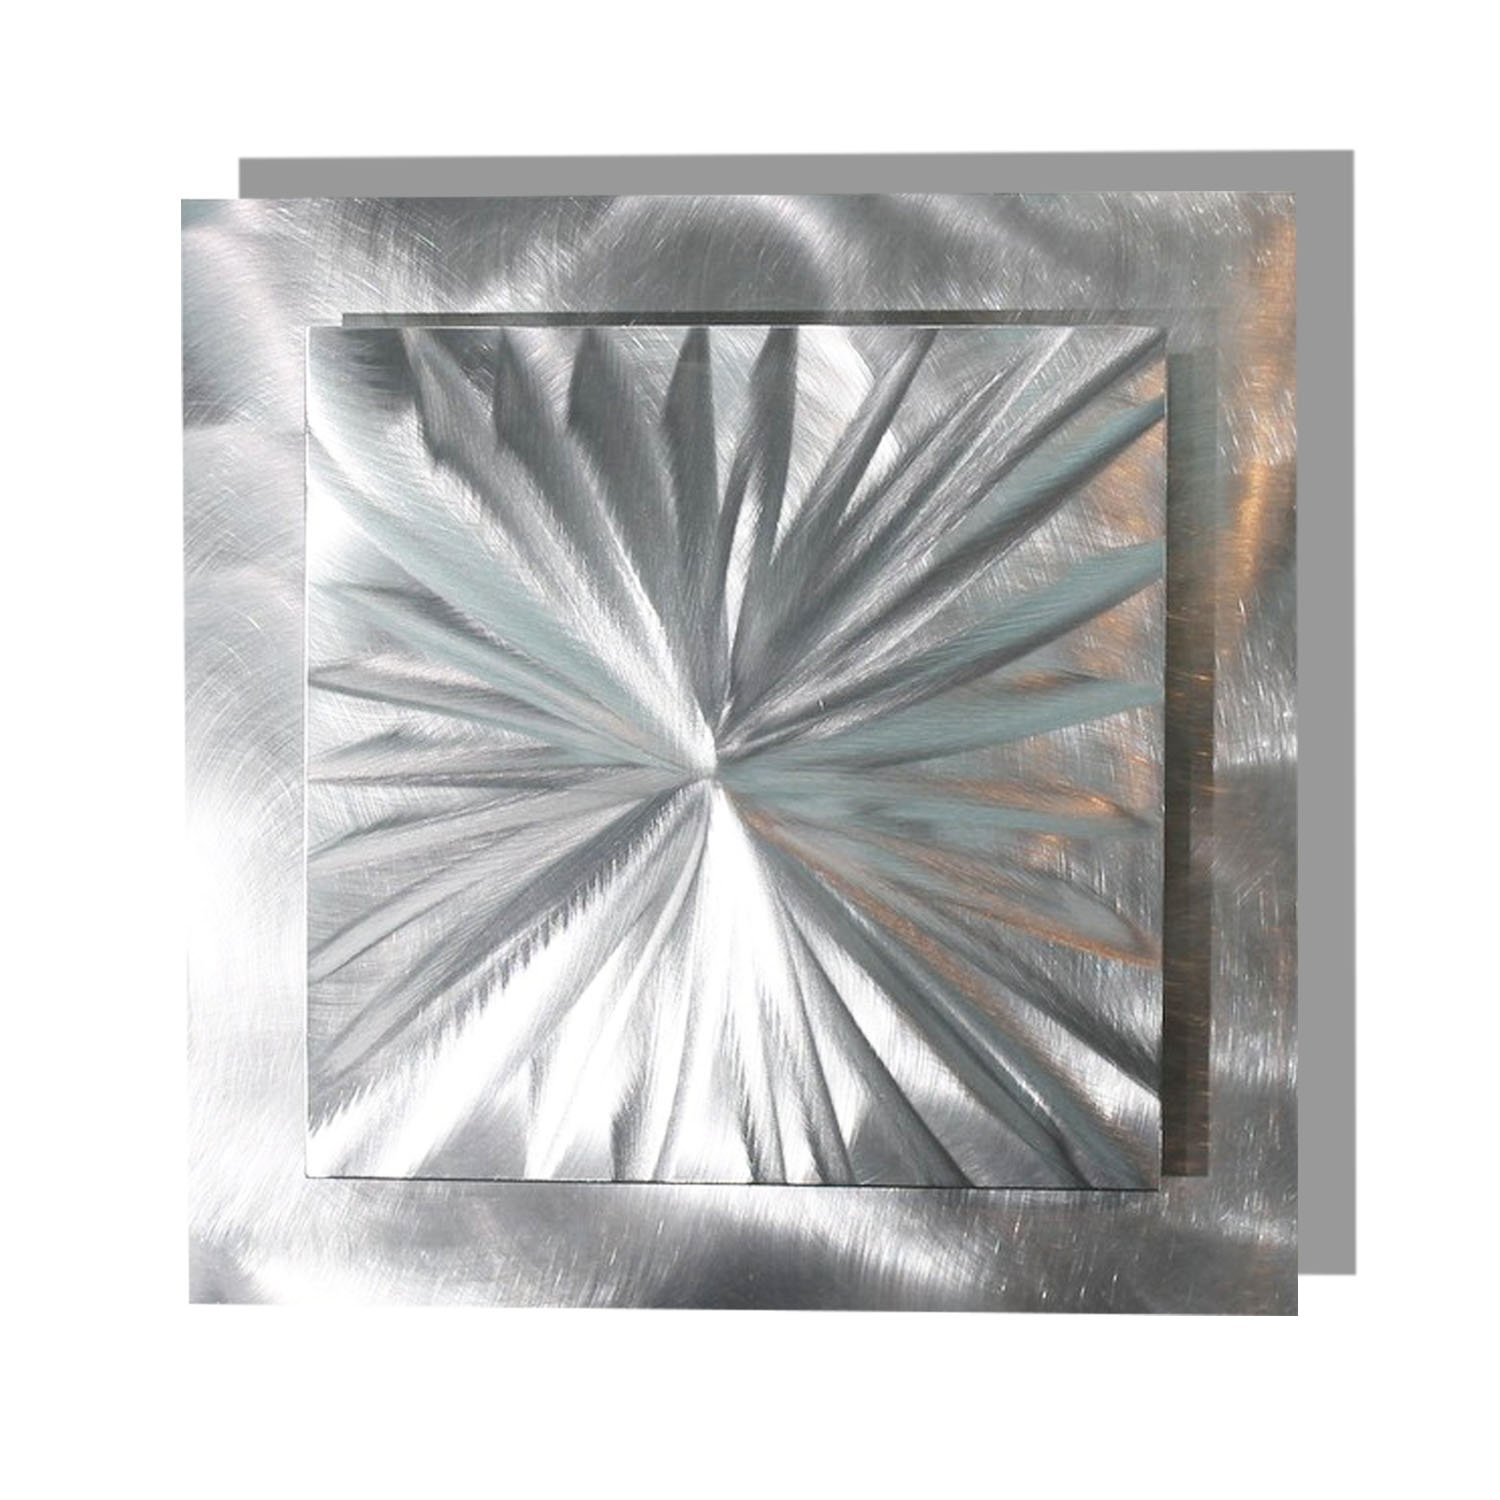 """Statements2000 Contemporary 3D Silver Metal Wall Accent with Futuristic Abstract Etchings - Metallic Home Decor, Handcrafted Metal Wall Art - Prizm 3 by Jon Allen - 12"""" x 12"""""""